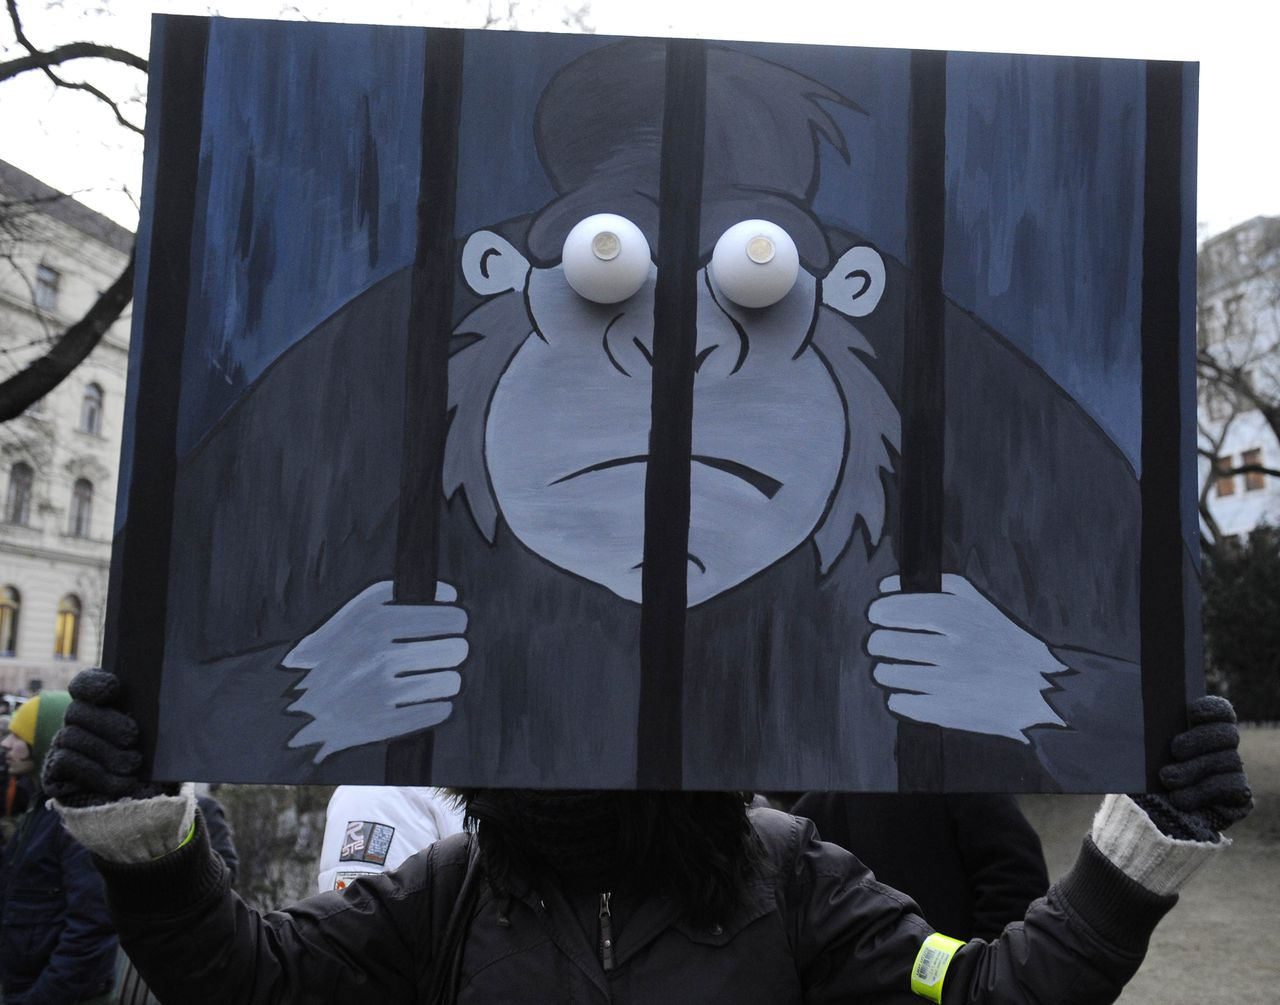 A protester holds up a picture depicting a gorilla in jail during a protest rally at SNP Square in Bratislava February 3, 2012. Slovaks attend protests in capital Bratislava and other Slovak towns, outraged by a corruption scandal - codename 'Gorilla' - involving top politicians, government officials and private equity group Penta. REUTERS/Radovan Stoklasa (SLOVAKIA - Tags: ANIMALS CIVIL UNREST POLITICS)